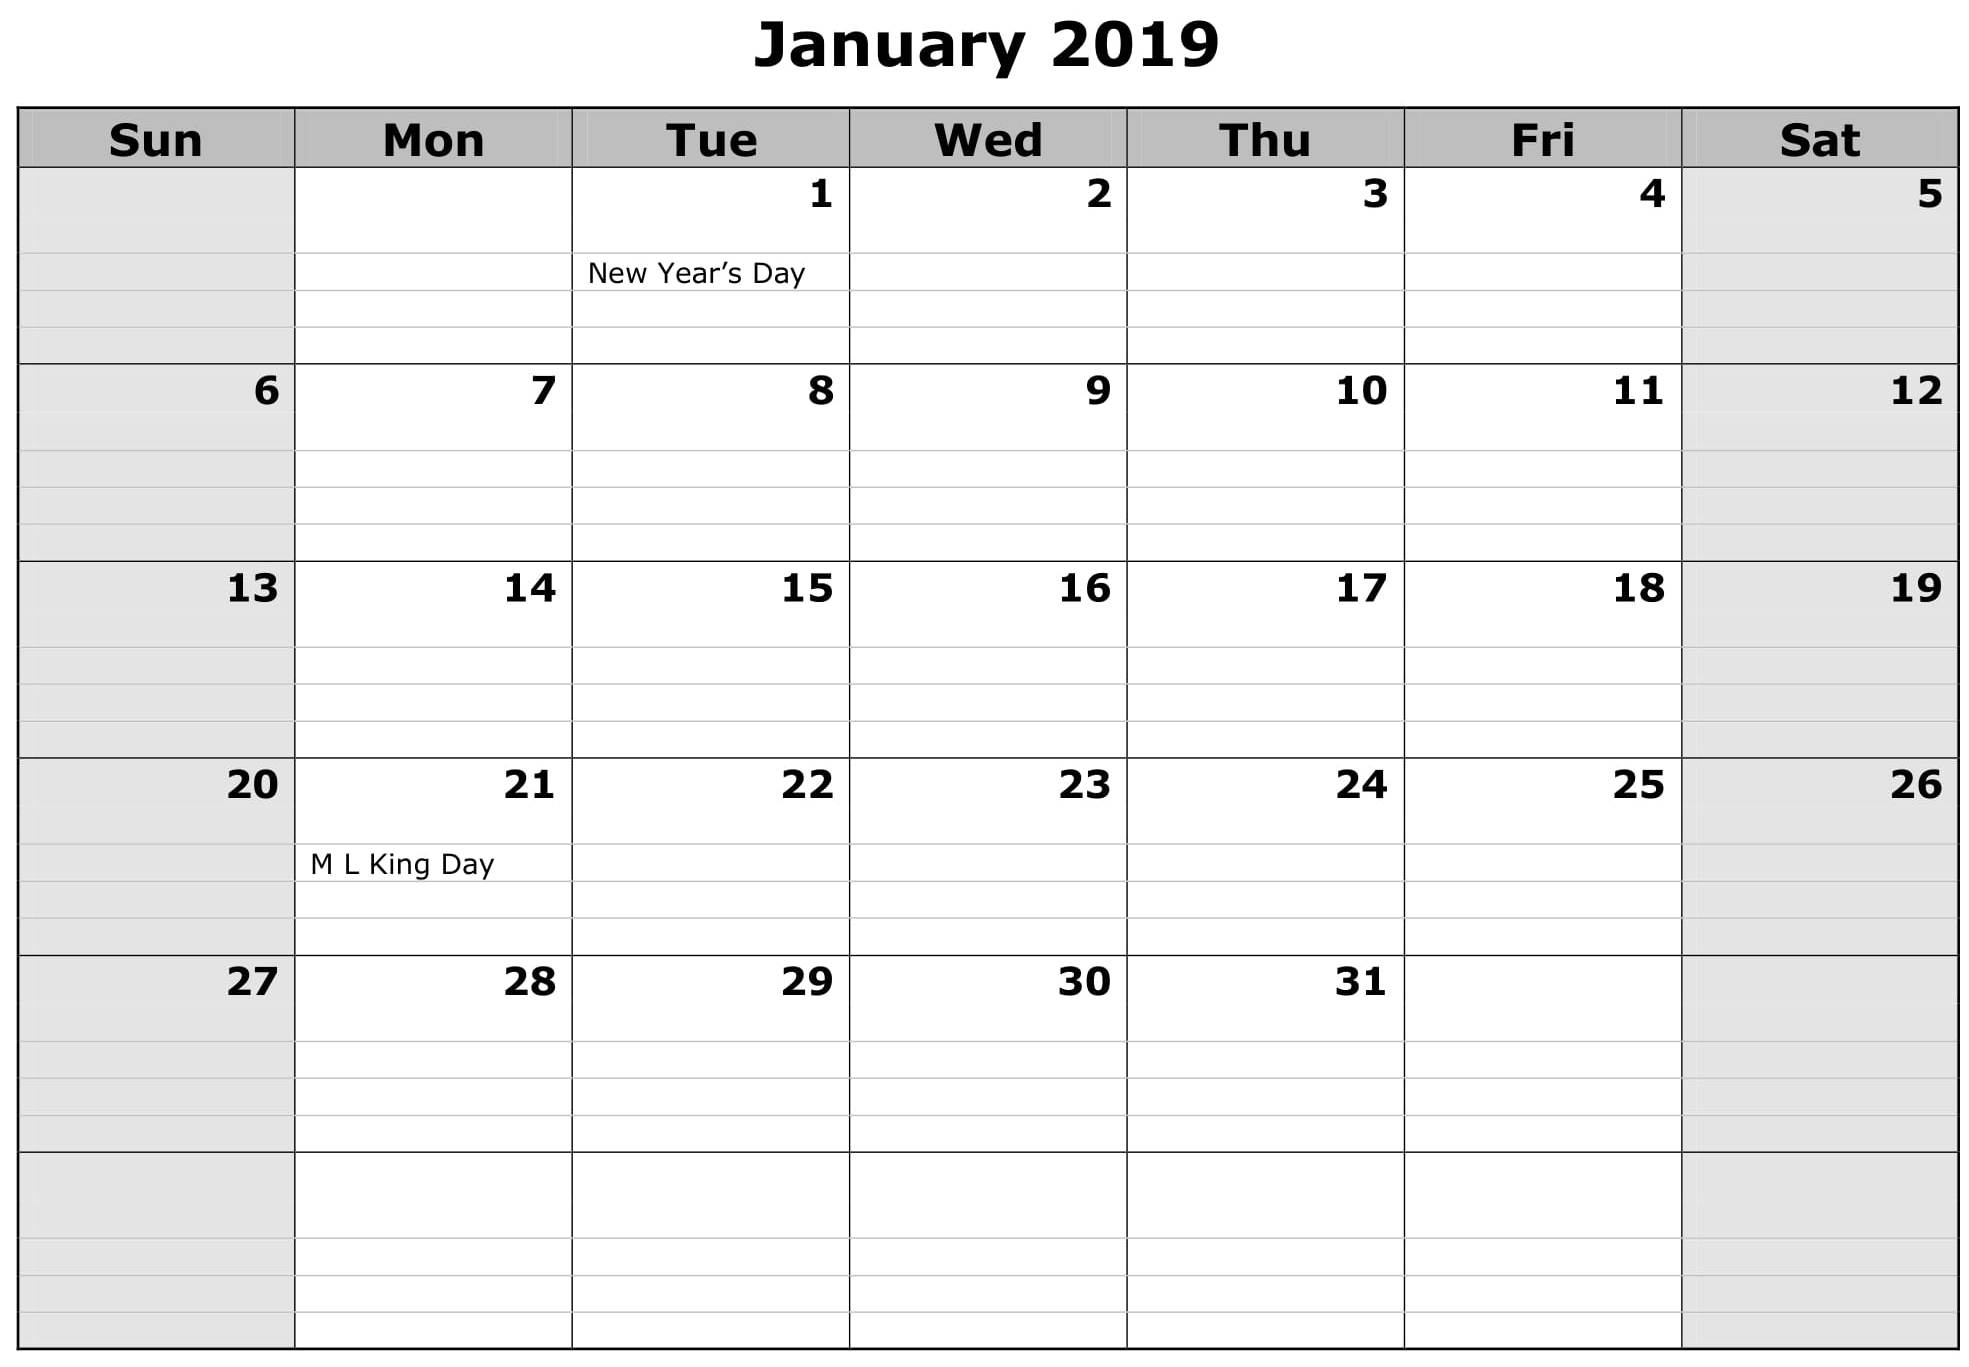 January 2019 Calendar Excel Worksheet